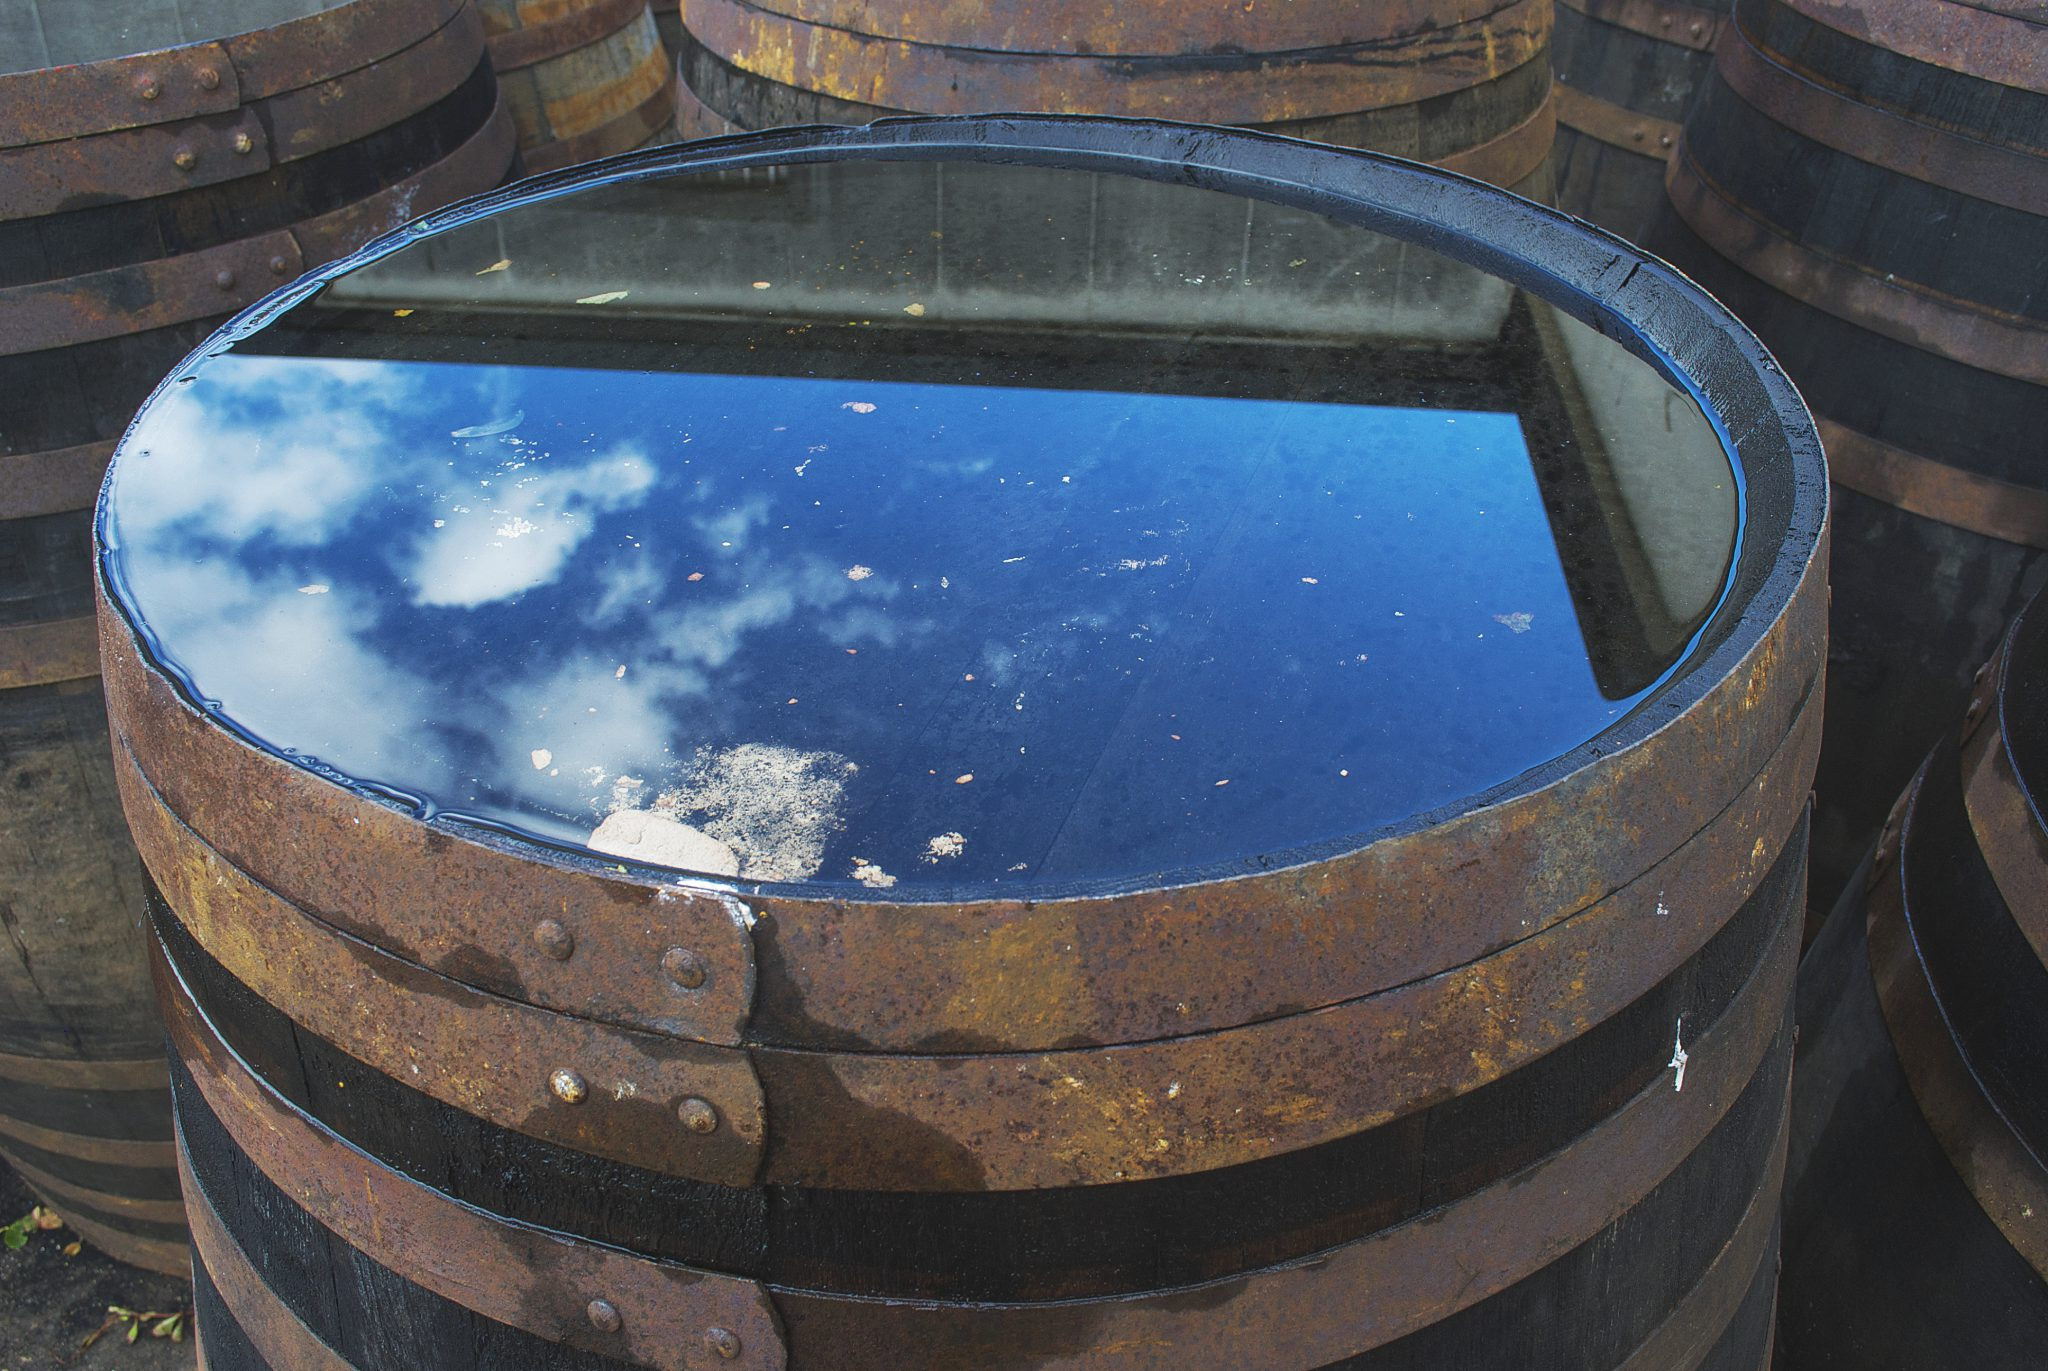 Van Weringh's Whisky World - Whisky vat